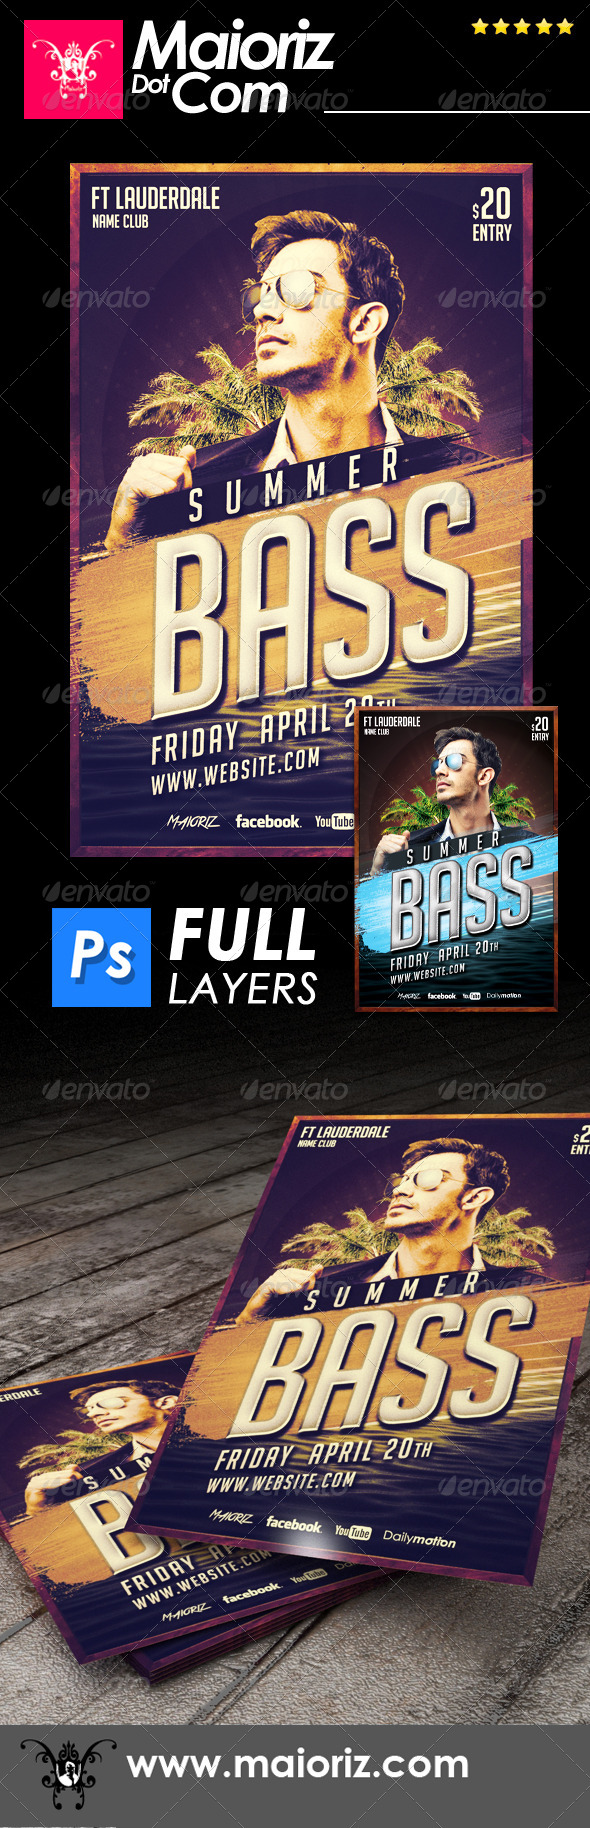 GraphicRiver Summer Bass Flyer 6923154